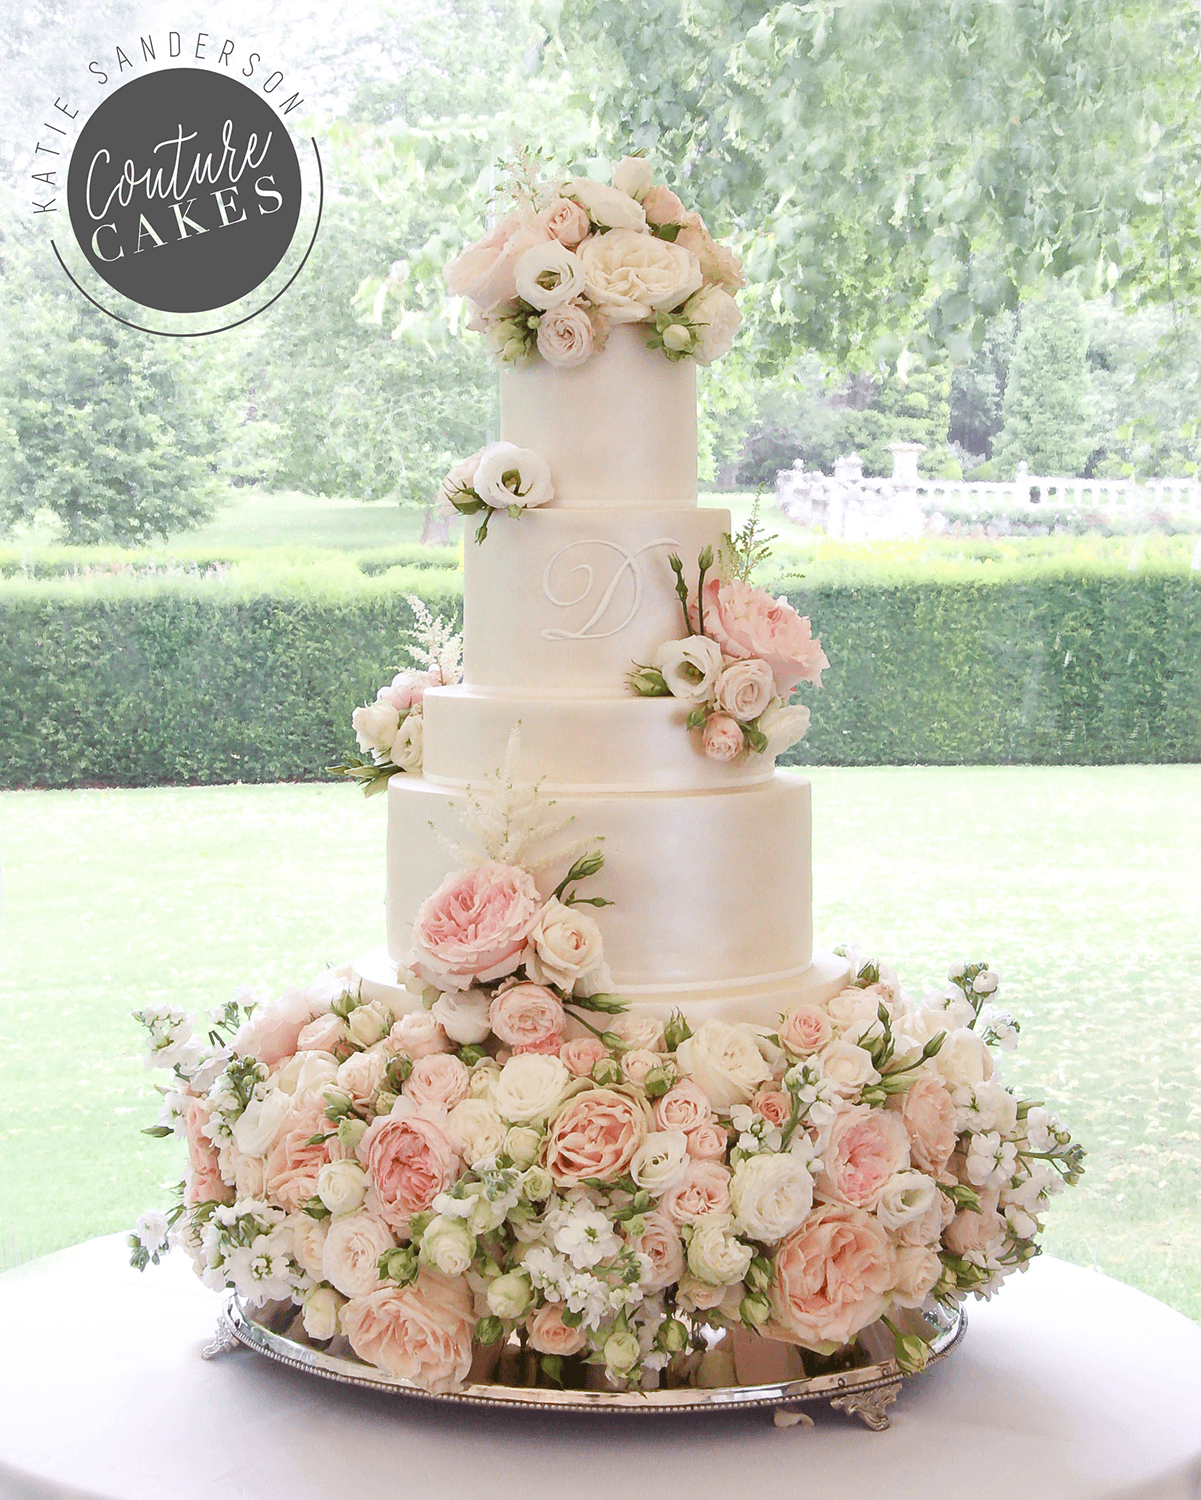 wedding cakes with flowers on top tiered wedding cakes couture cakes 26022